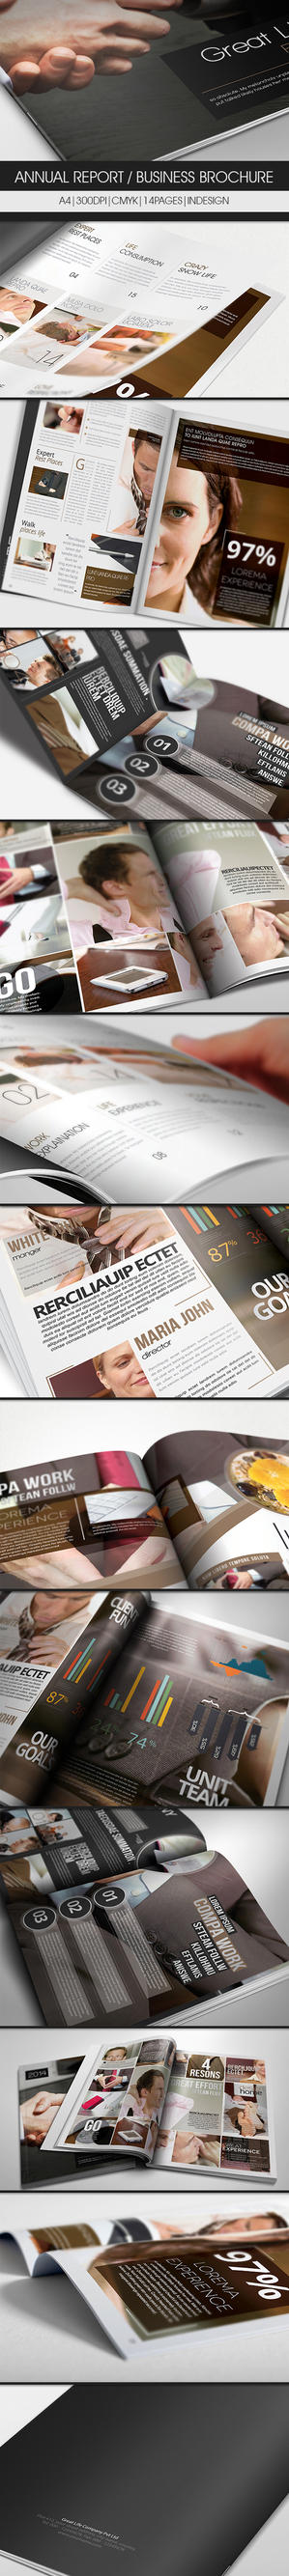 Annual Report / Business Brochure by UnicoDesign